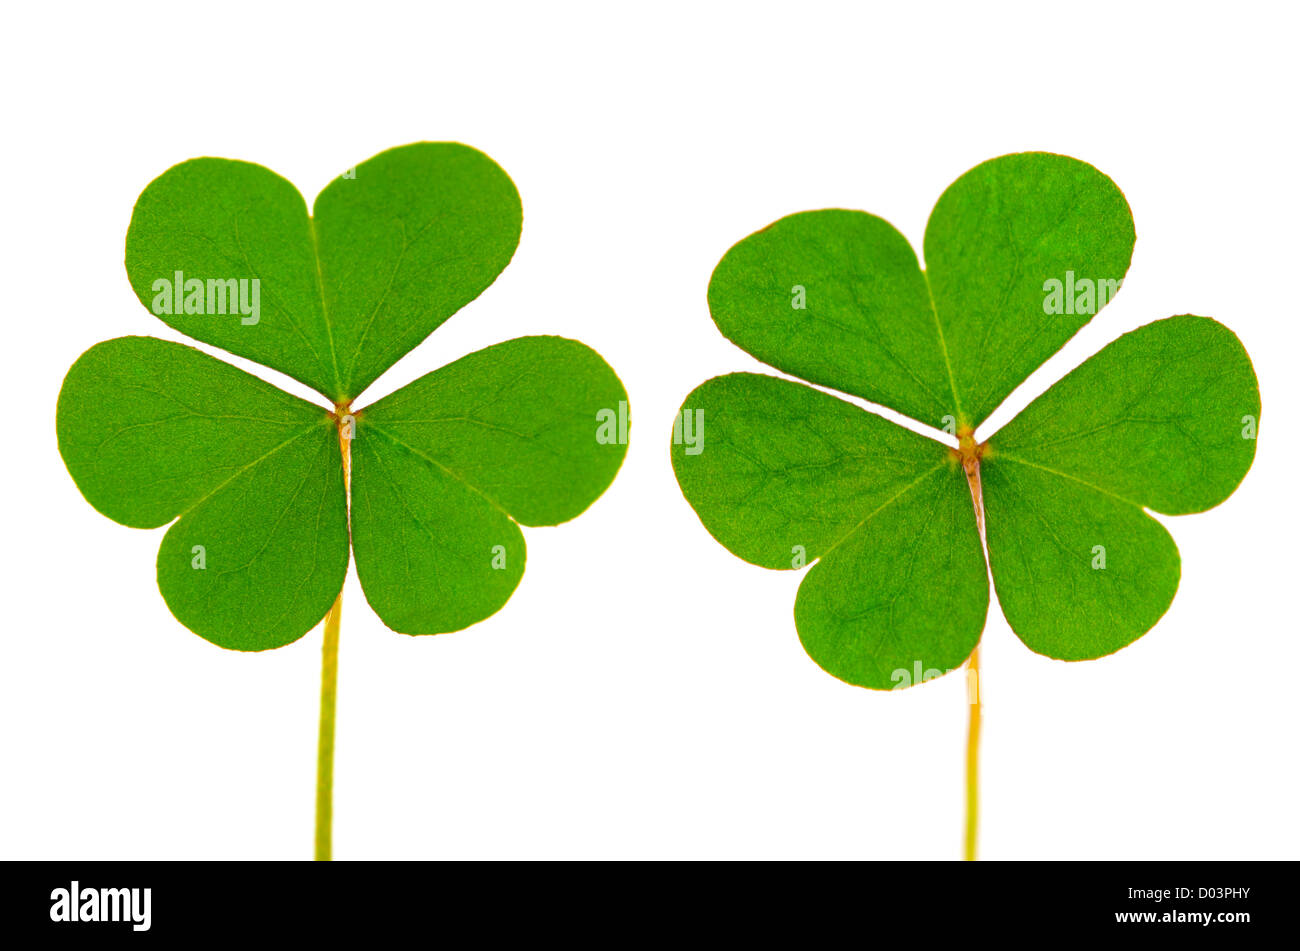 Three Leaf Clover on white background - Stock Image